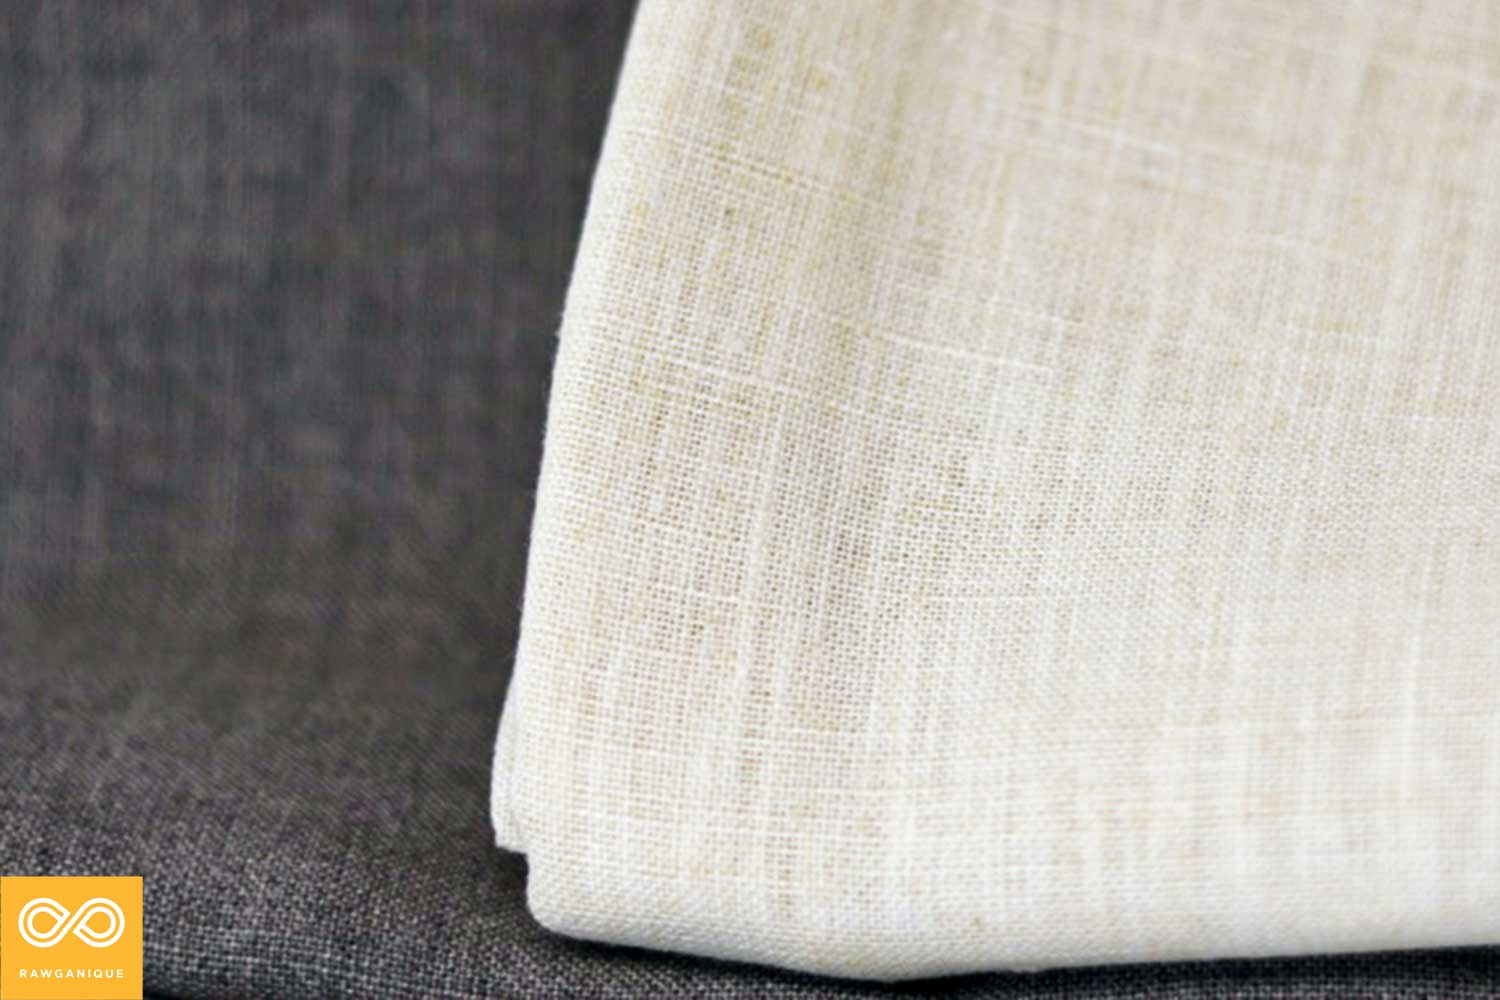 Natural (unbleached, undyed) organic linen (left) and organic hemp (right) fabric.